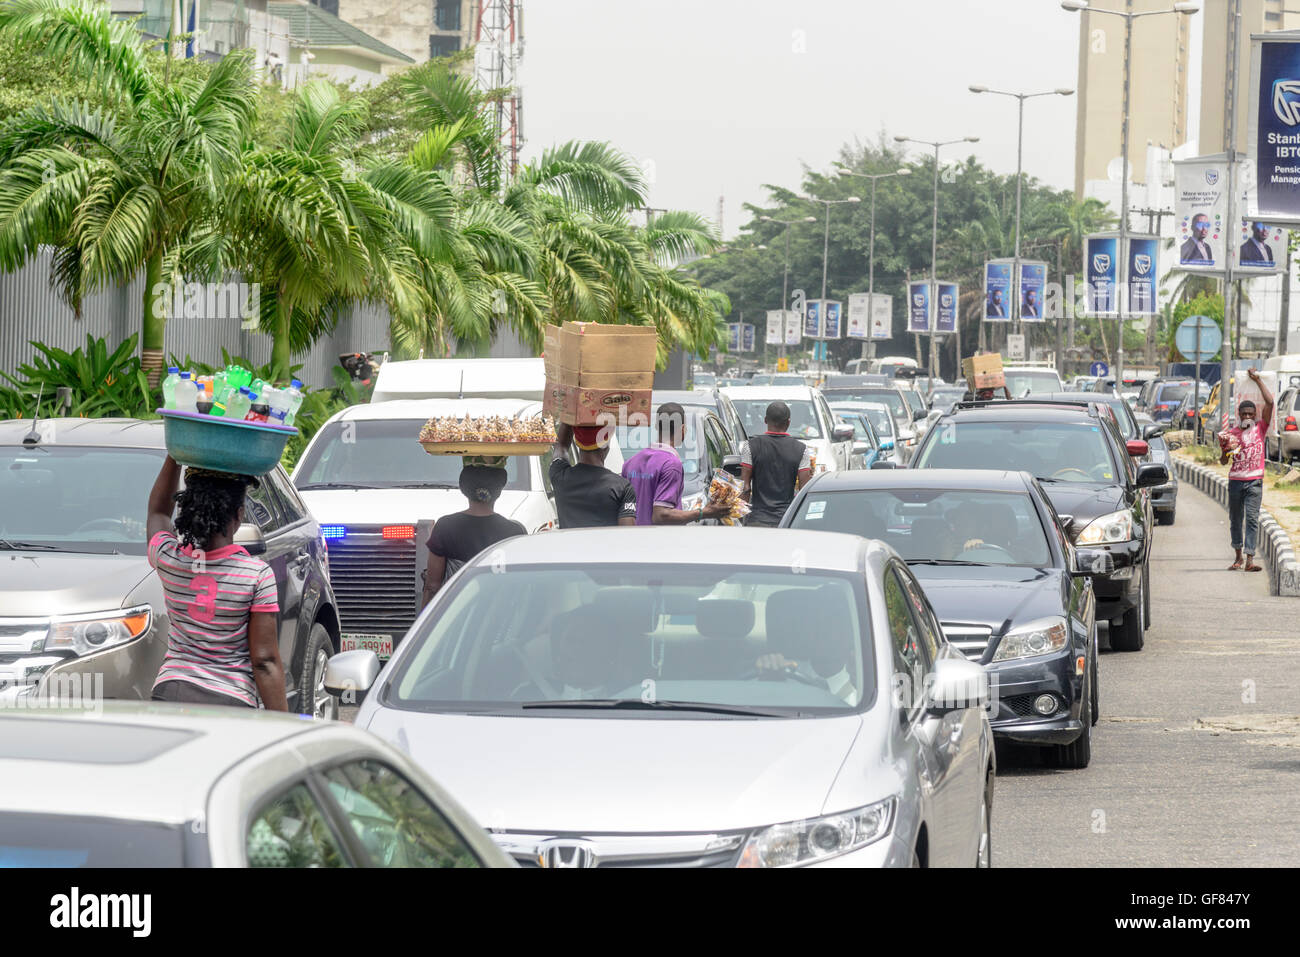 Street hawkers ply their wares in traffic, Victoria Island, Lagos, Nigeria, West Africa - Stock Image